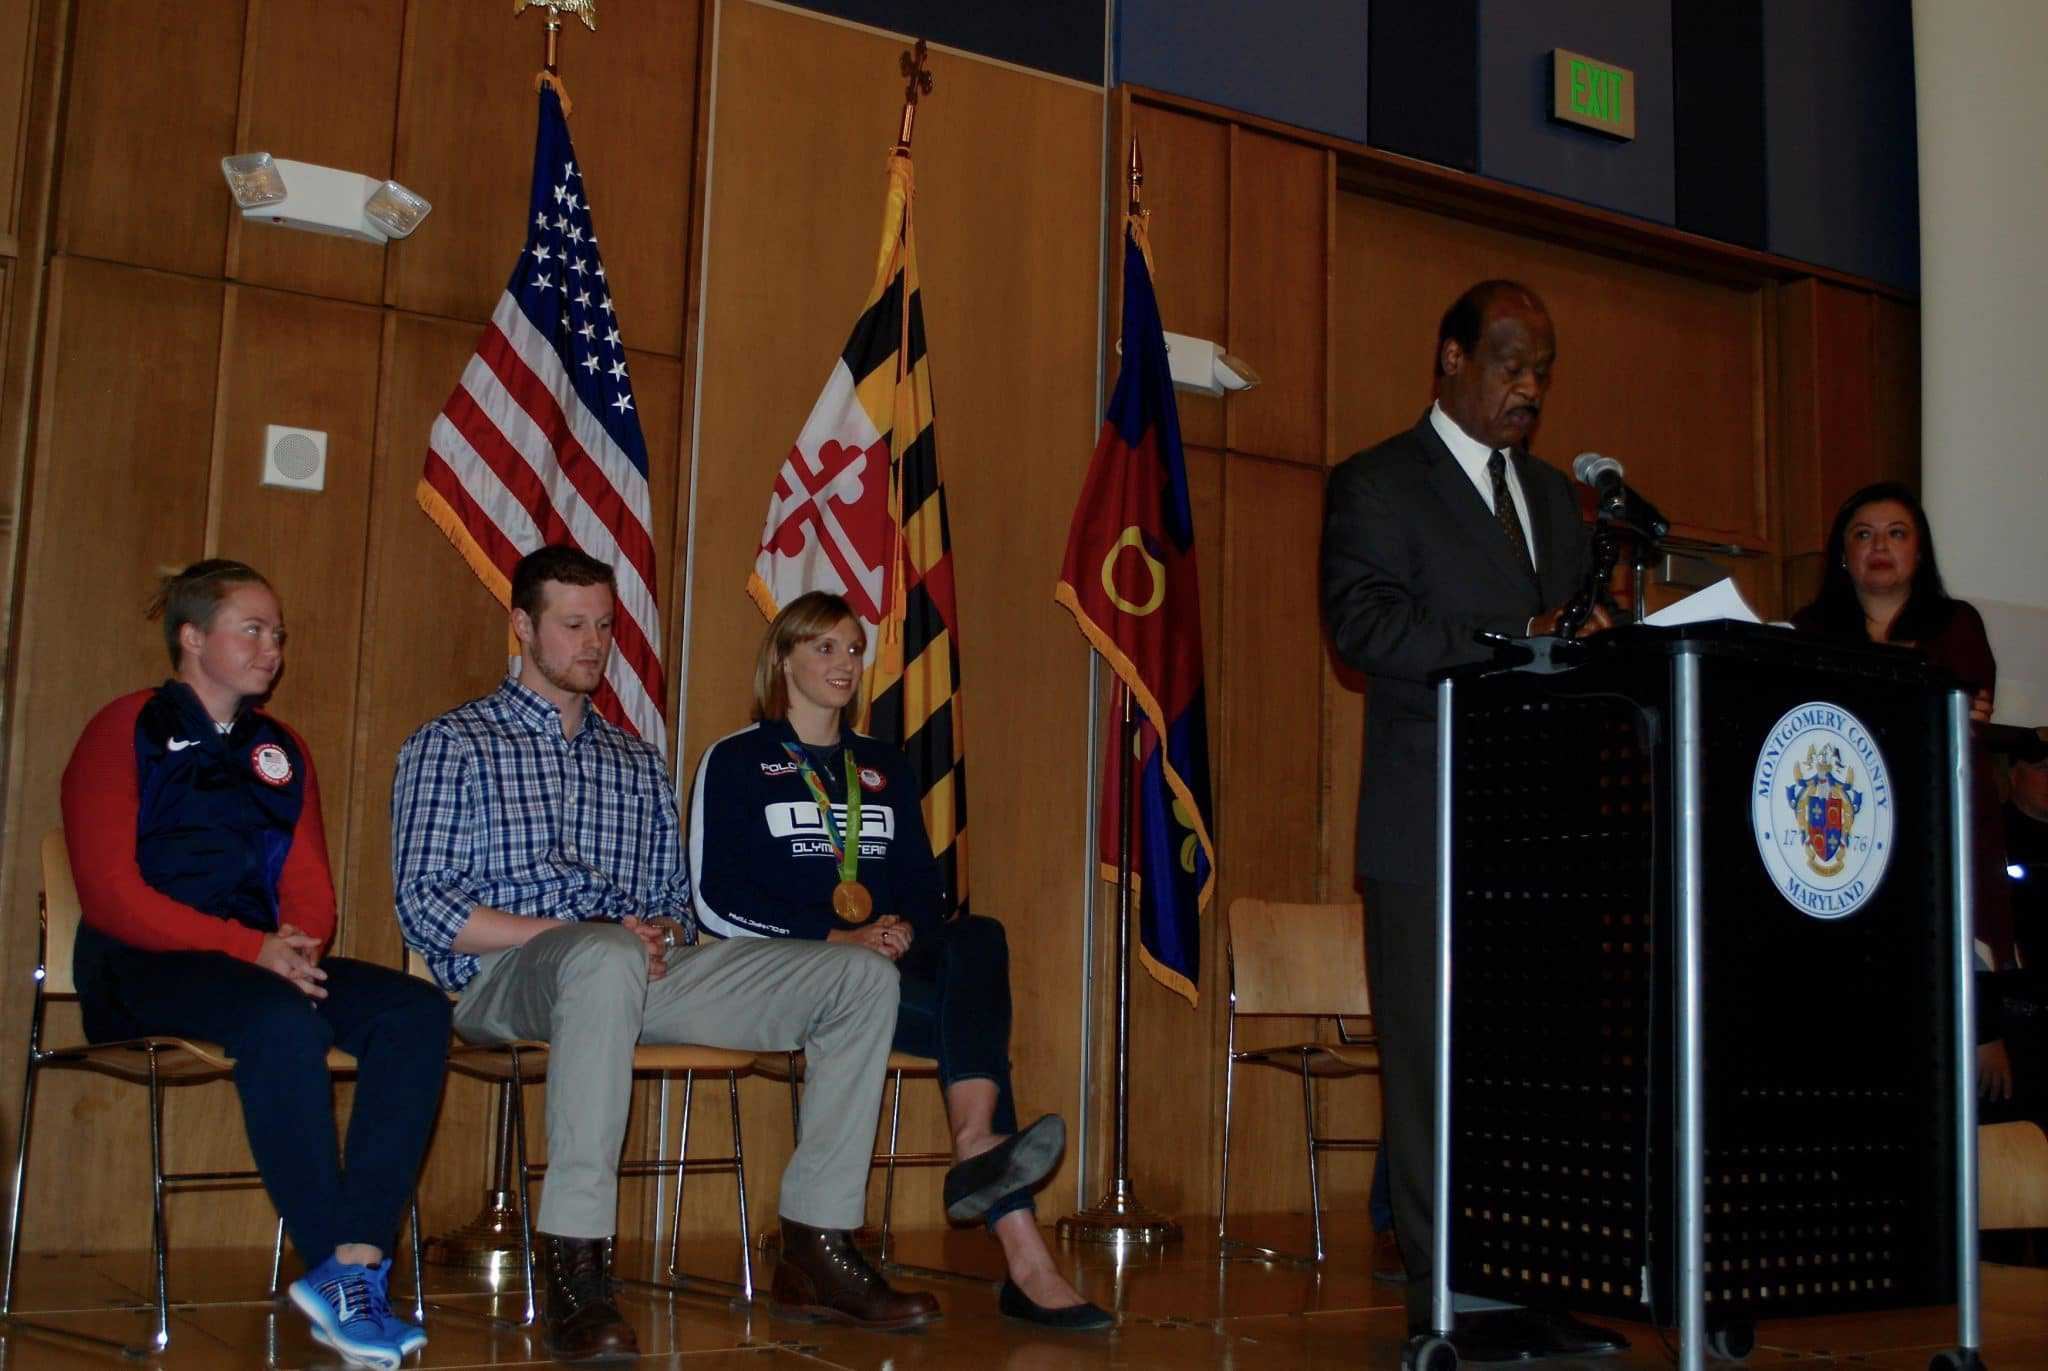 Four Olympians honored during ceremony in Silver Spring - Four Montgomery County Olympians who will be the first inductees into a new county sports hall of fame were honored Monday night in a ceremony at the Silver Spring Civic Building.